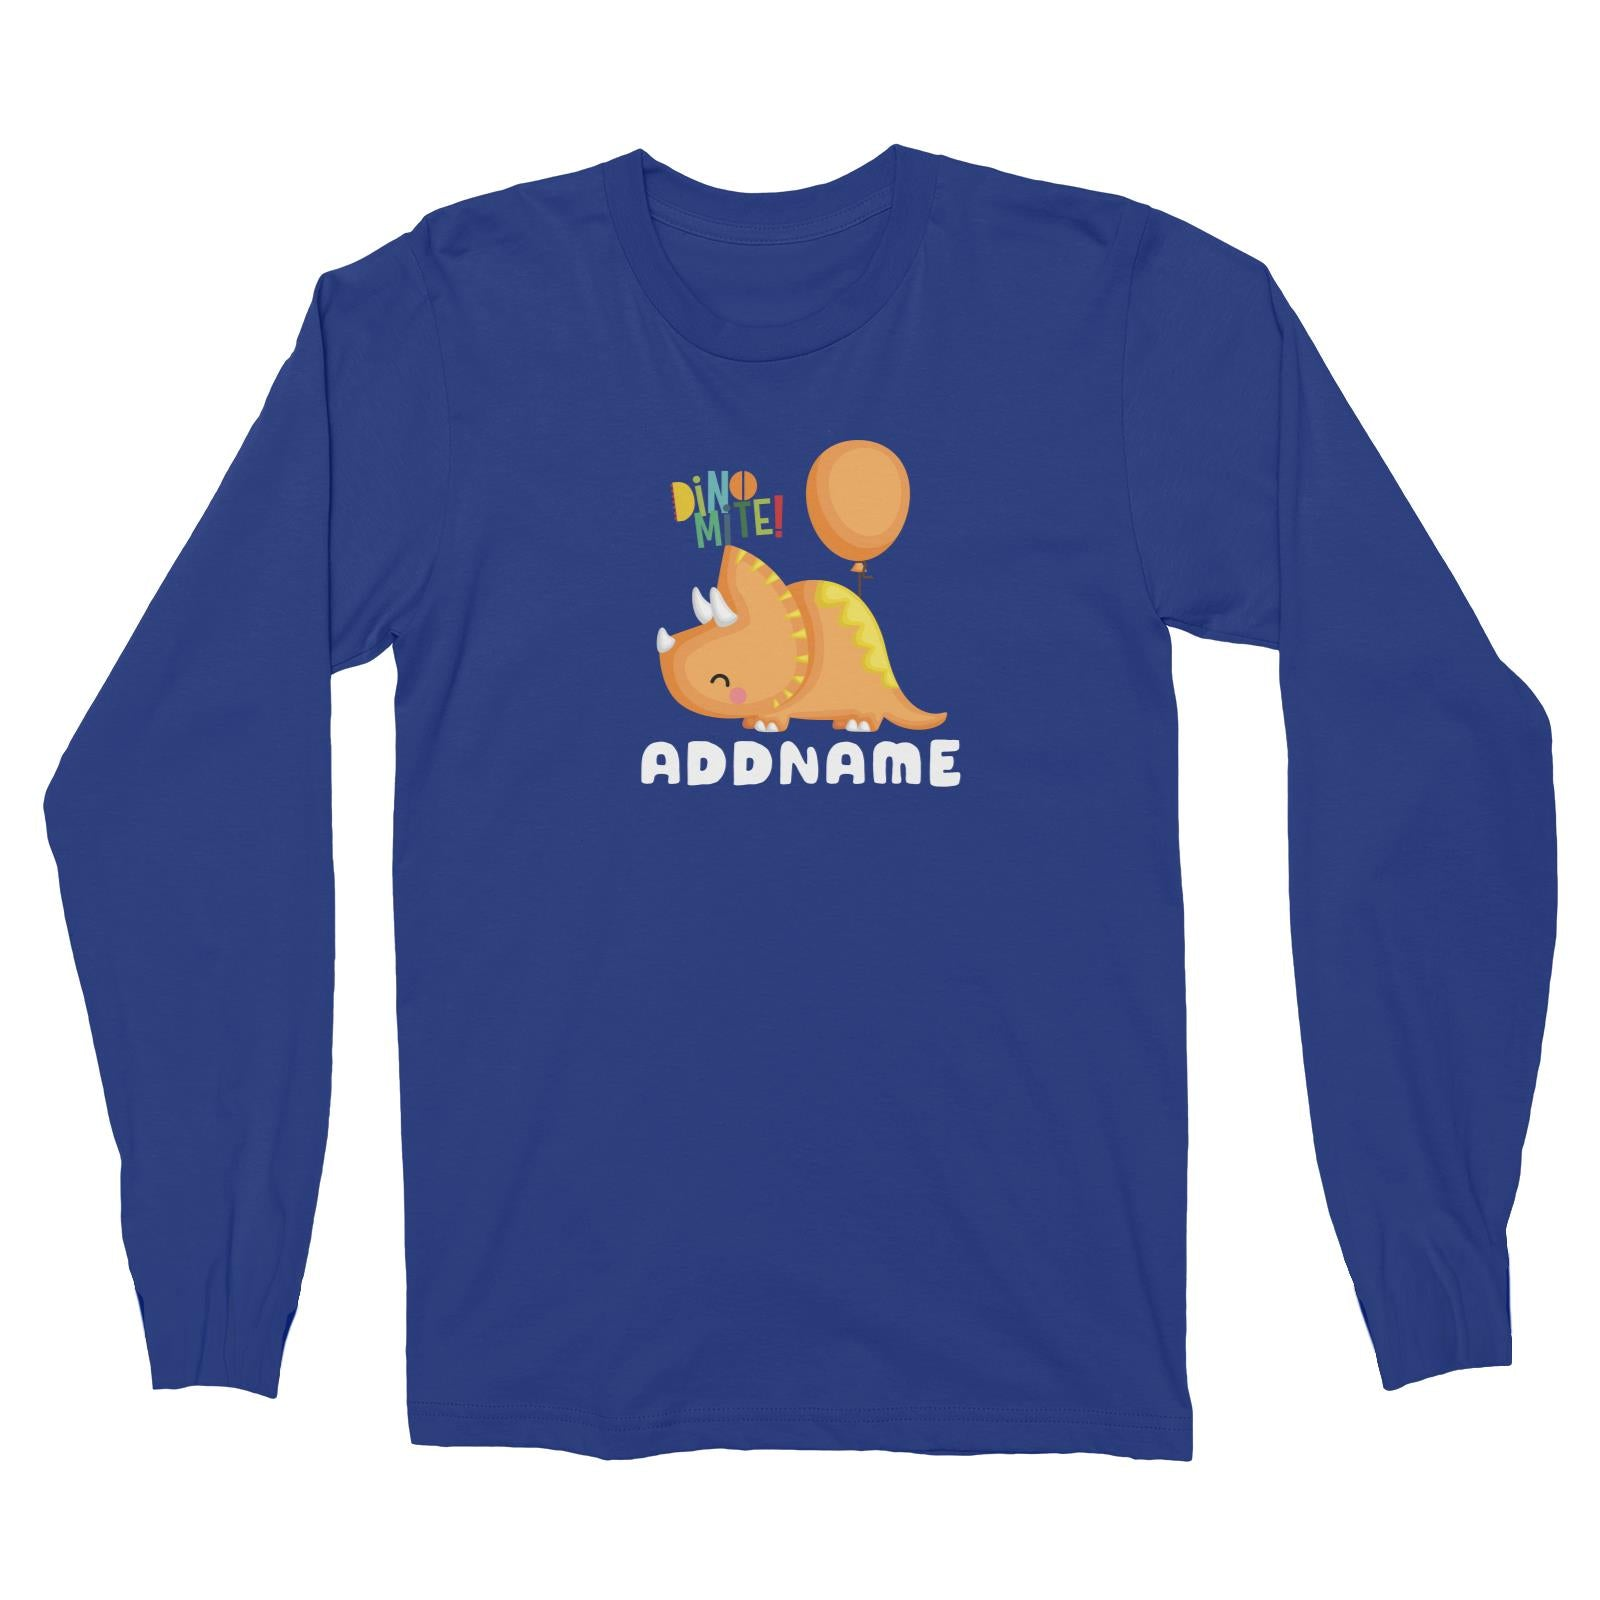 Birthday Dinosaur Happy Orange Triceratop DinoMite Ties With Balloon Addname Long Sleeve Unisex T-Shirt